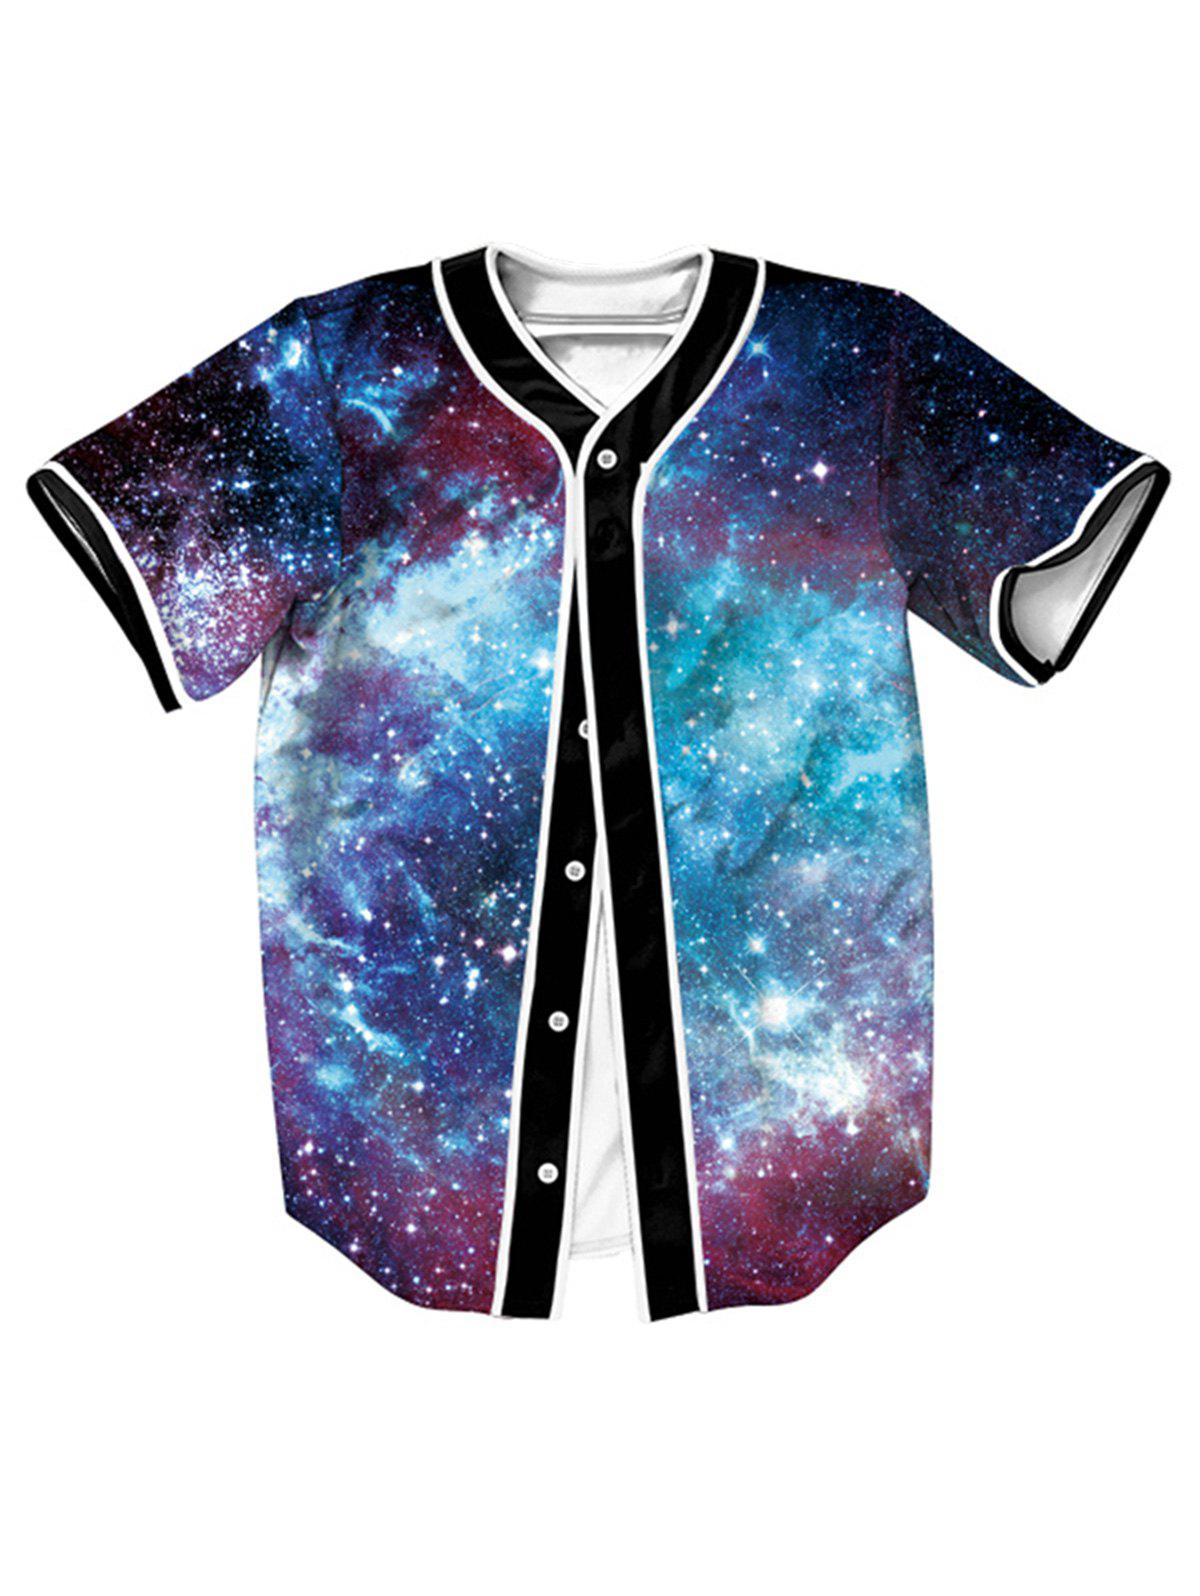 Online Short Sleeve Button Up Galaxy Baseball Jersey